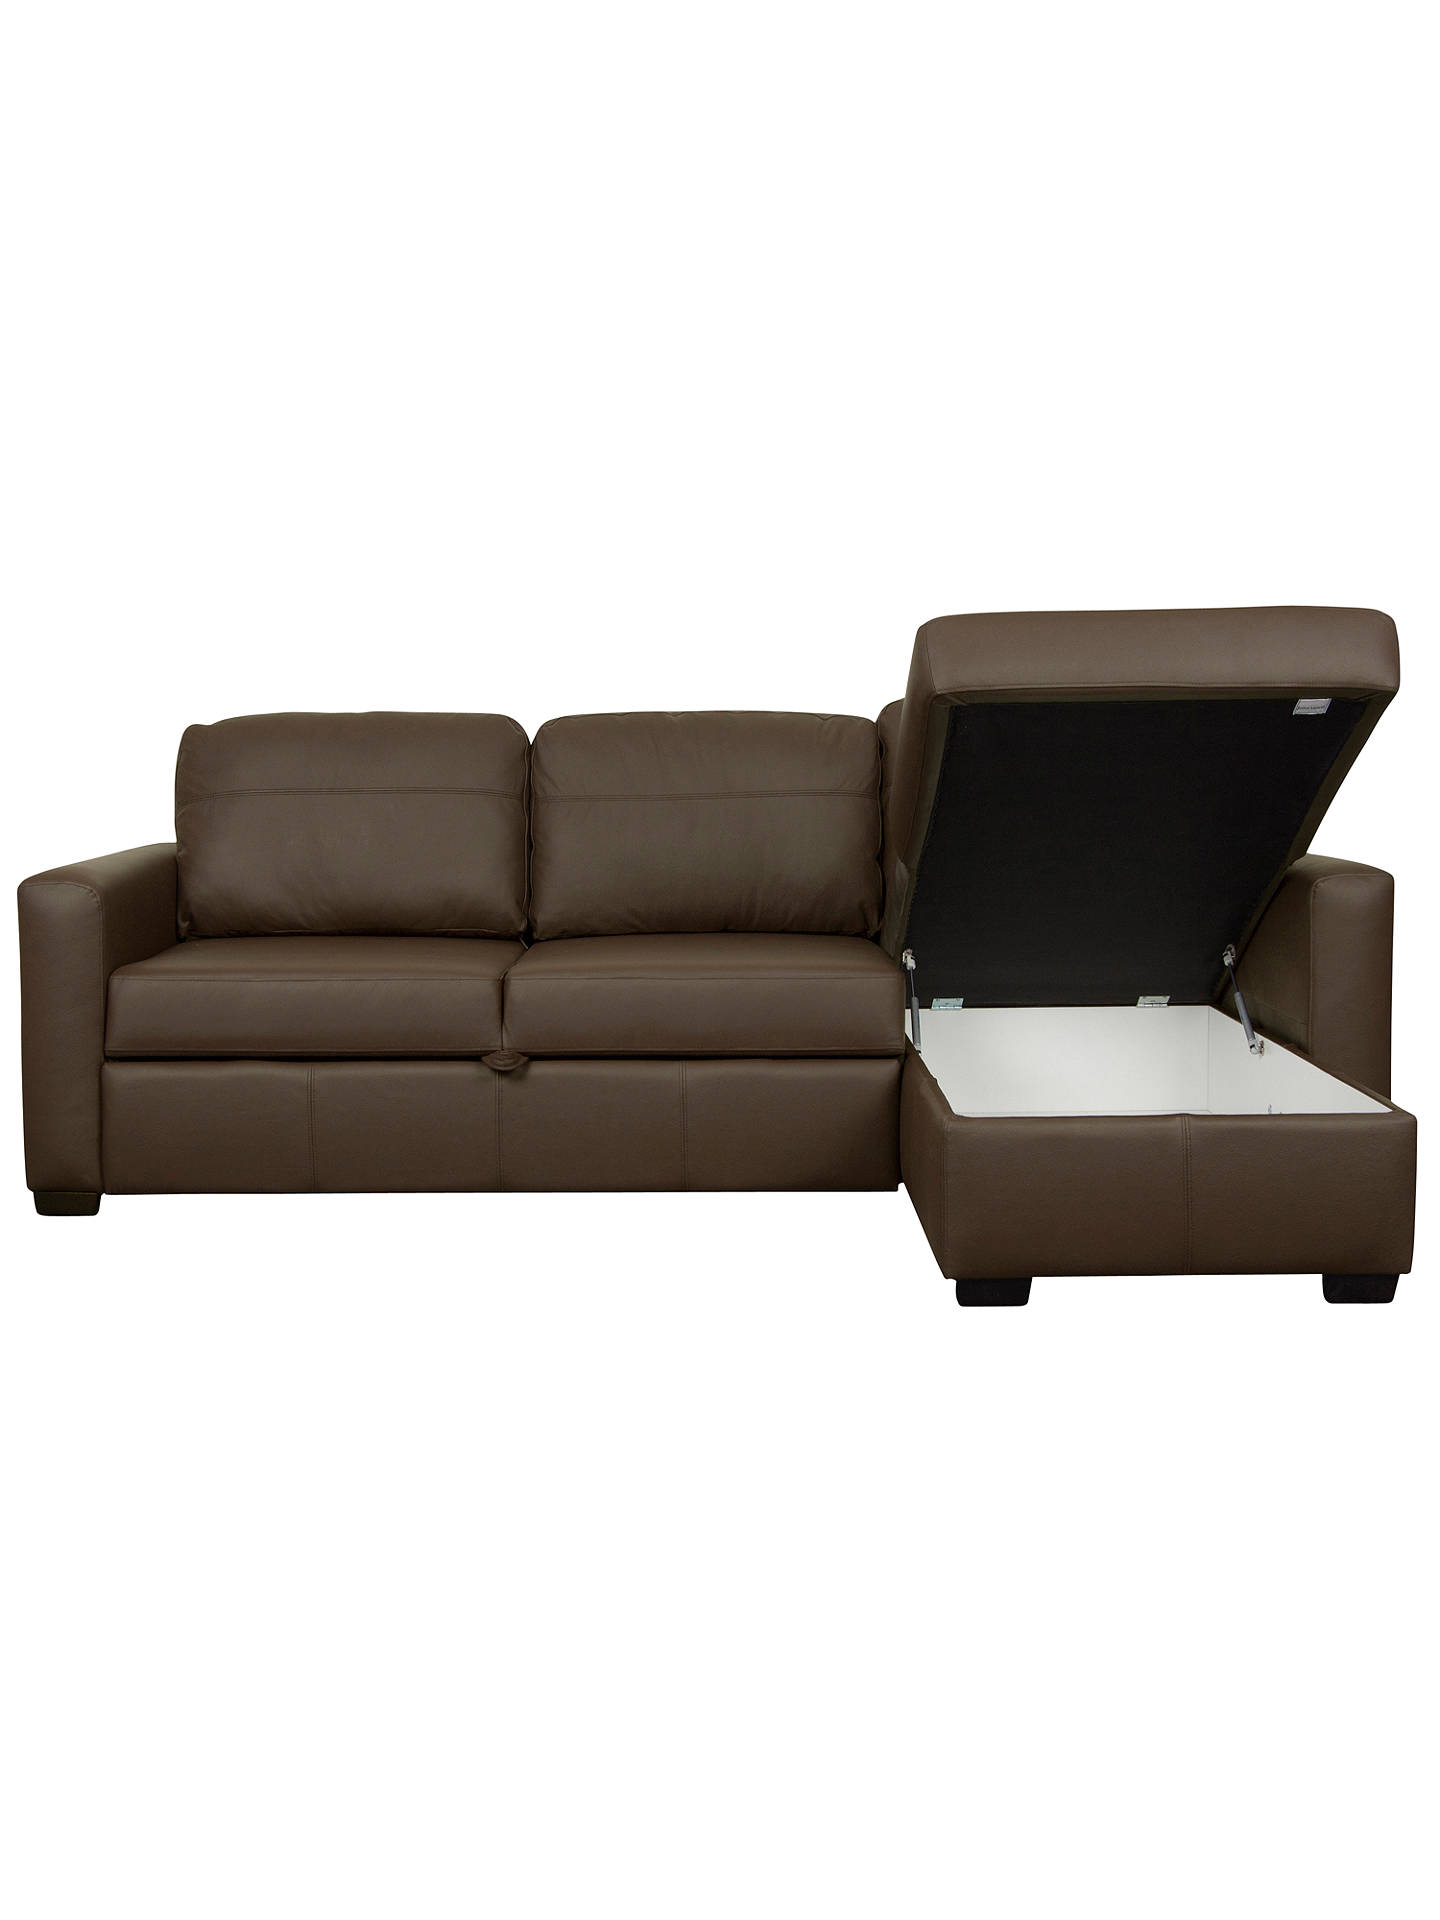 Fabulous John Lewis Sacha Large Leather Sofa Bed With Foam Mattress Evergreenethics Interior Chair Design Evergreenethicsorg